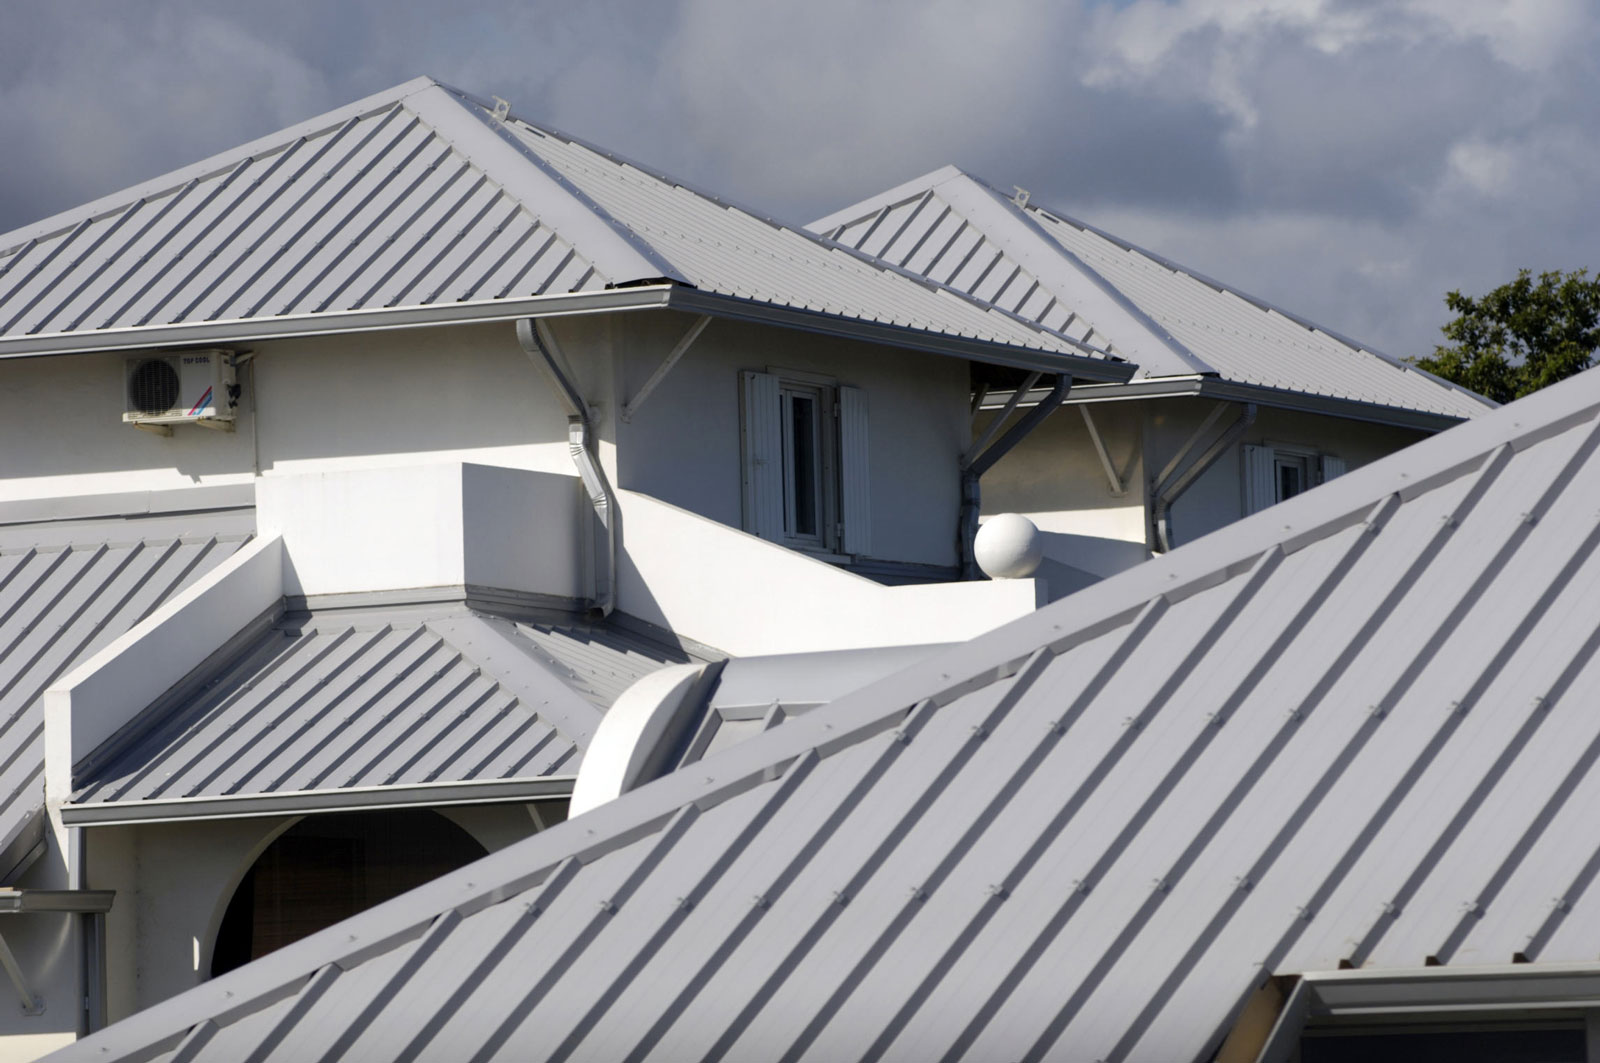 Roofing Materials – A Basic Guide on Roofing Requirements in the Philippines